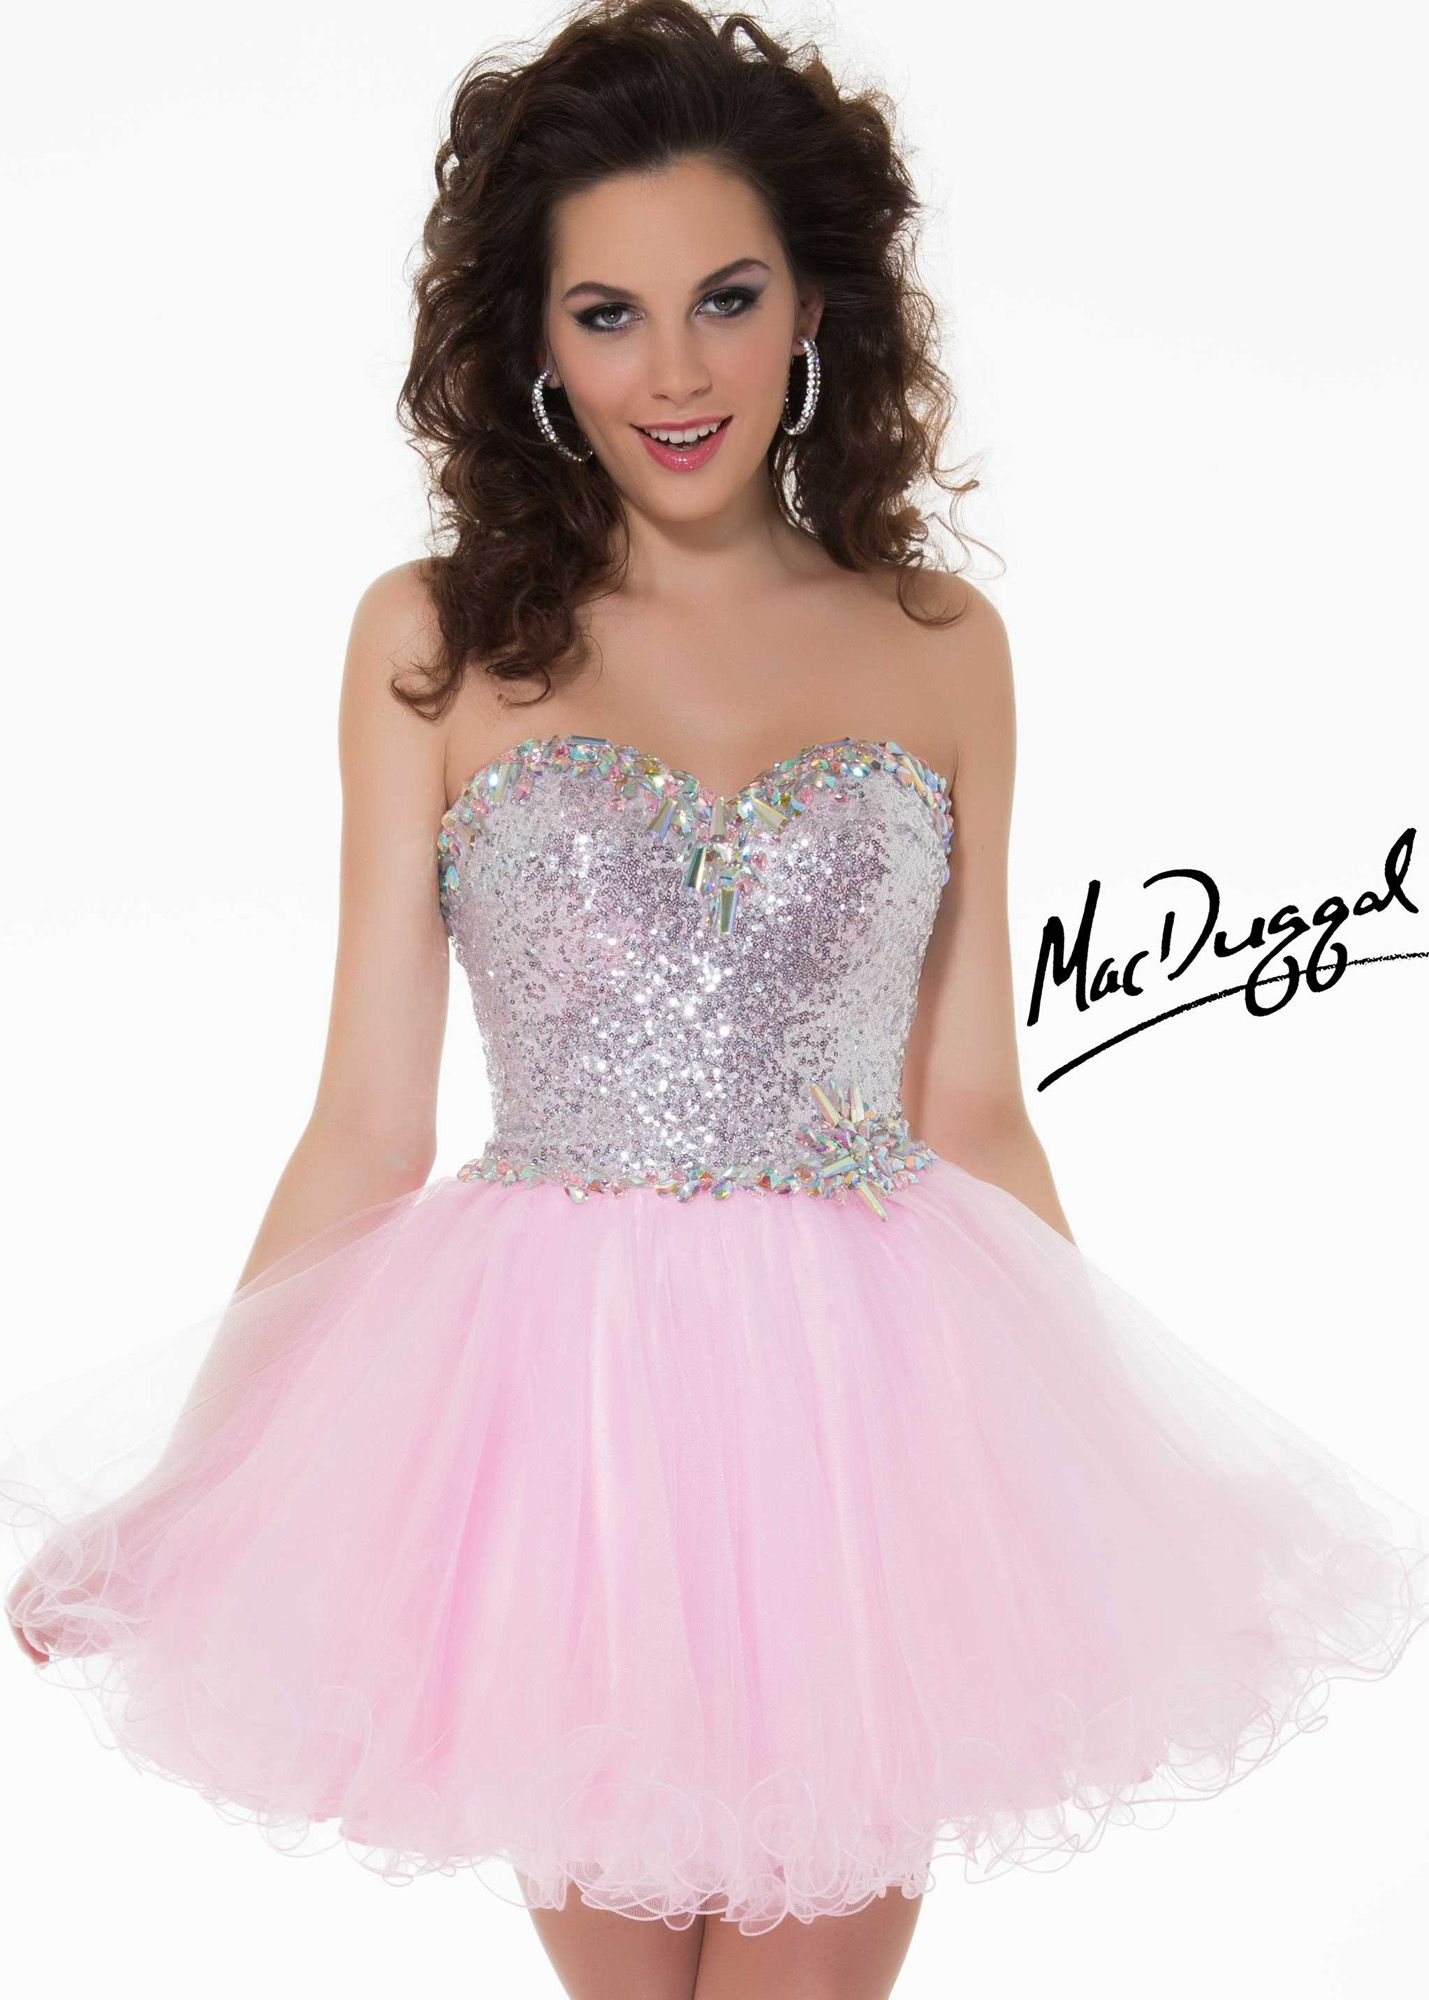 Mac duggal 64592n strapless pink sequin tulle